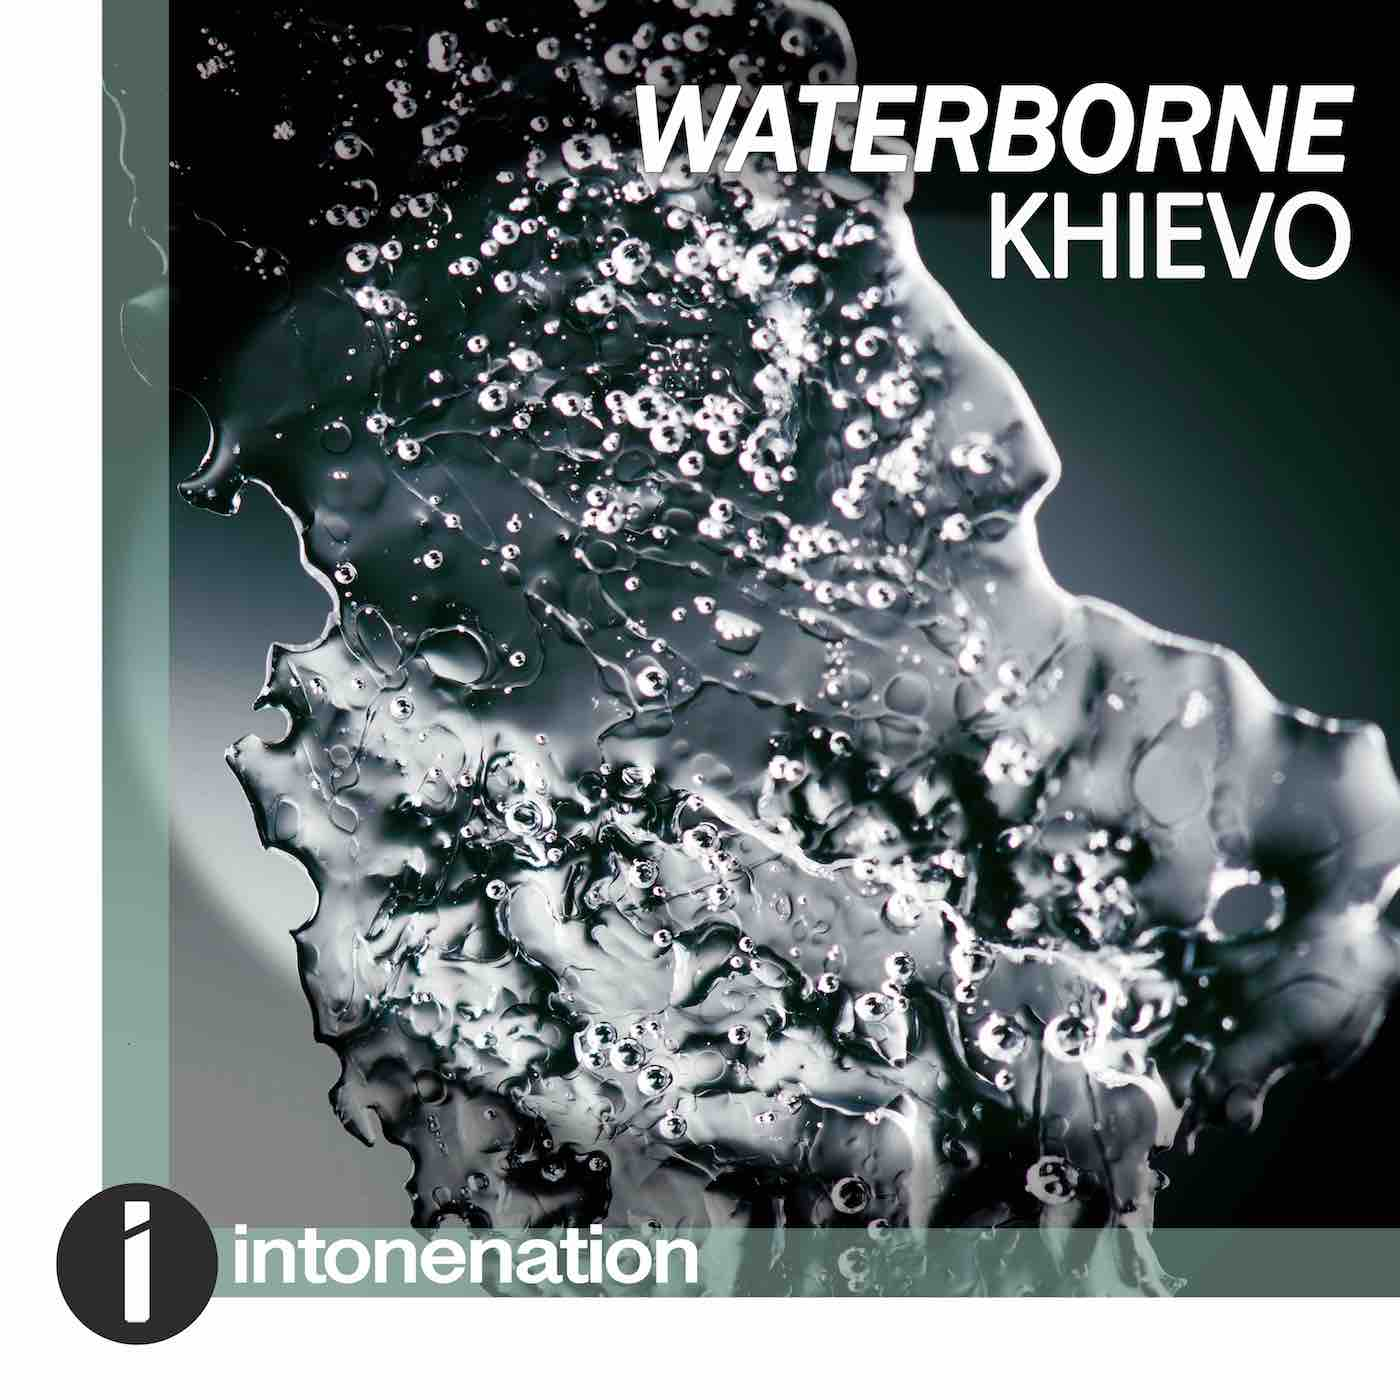 Listen/Download:  https://InToneNation.lnk.to/Waterborne